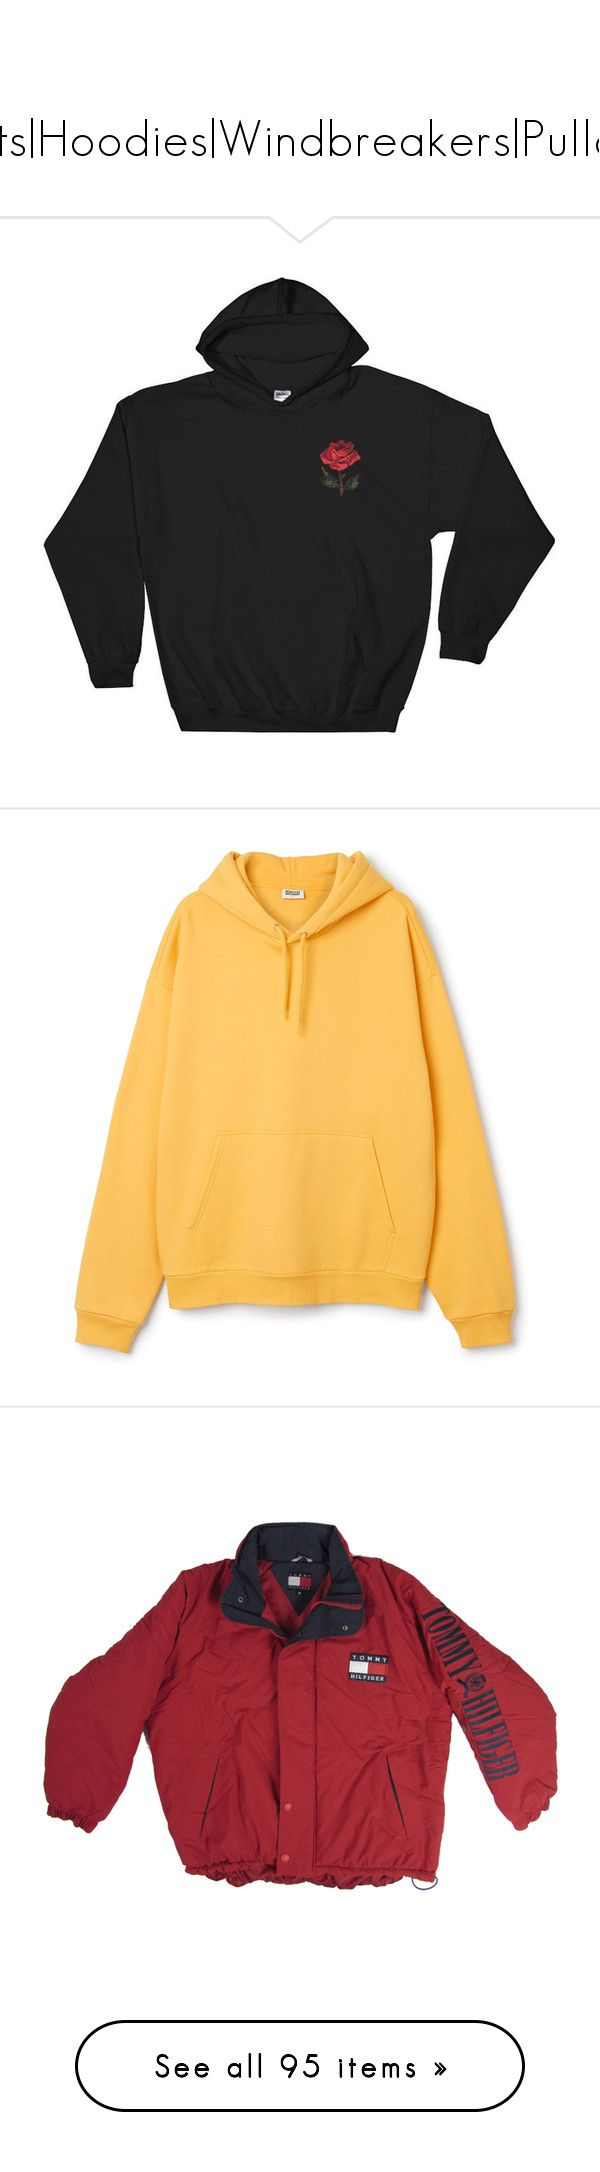 """""""Jackets Hoodies Windbreakers Pullovers"""" by ayepaigee ❤ liked on Polyvore featuring tops, hoodies, sweaters, shirts, black, sweatshirts, women's clothing, embroidered hoodies, sports shirts and checkered shirt"""